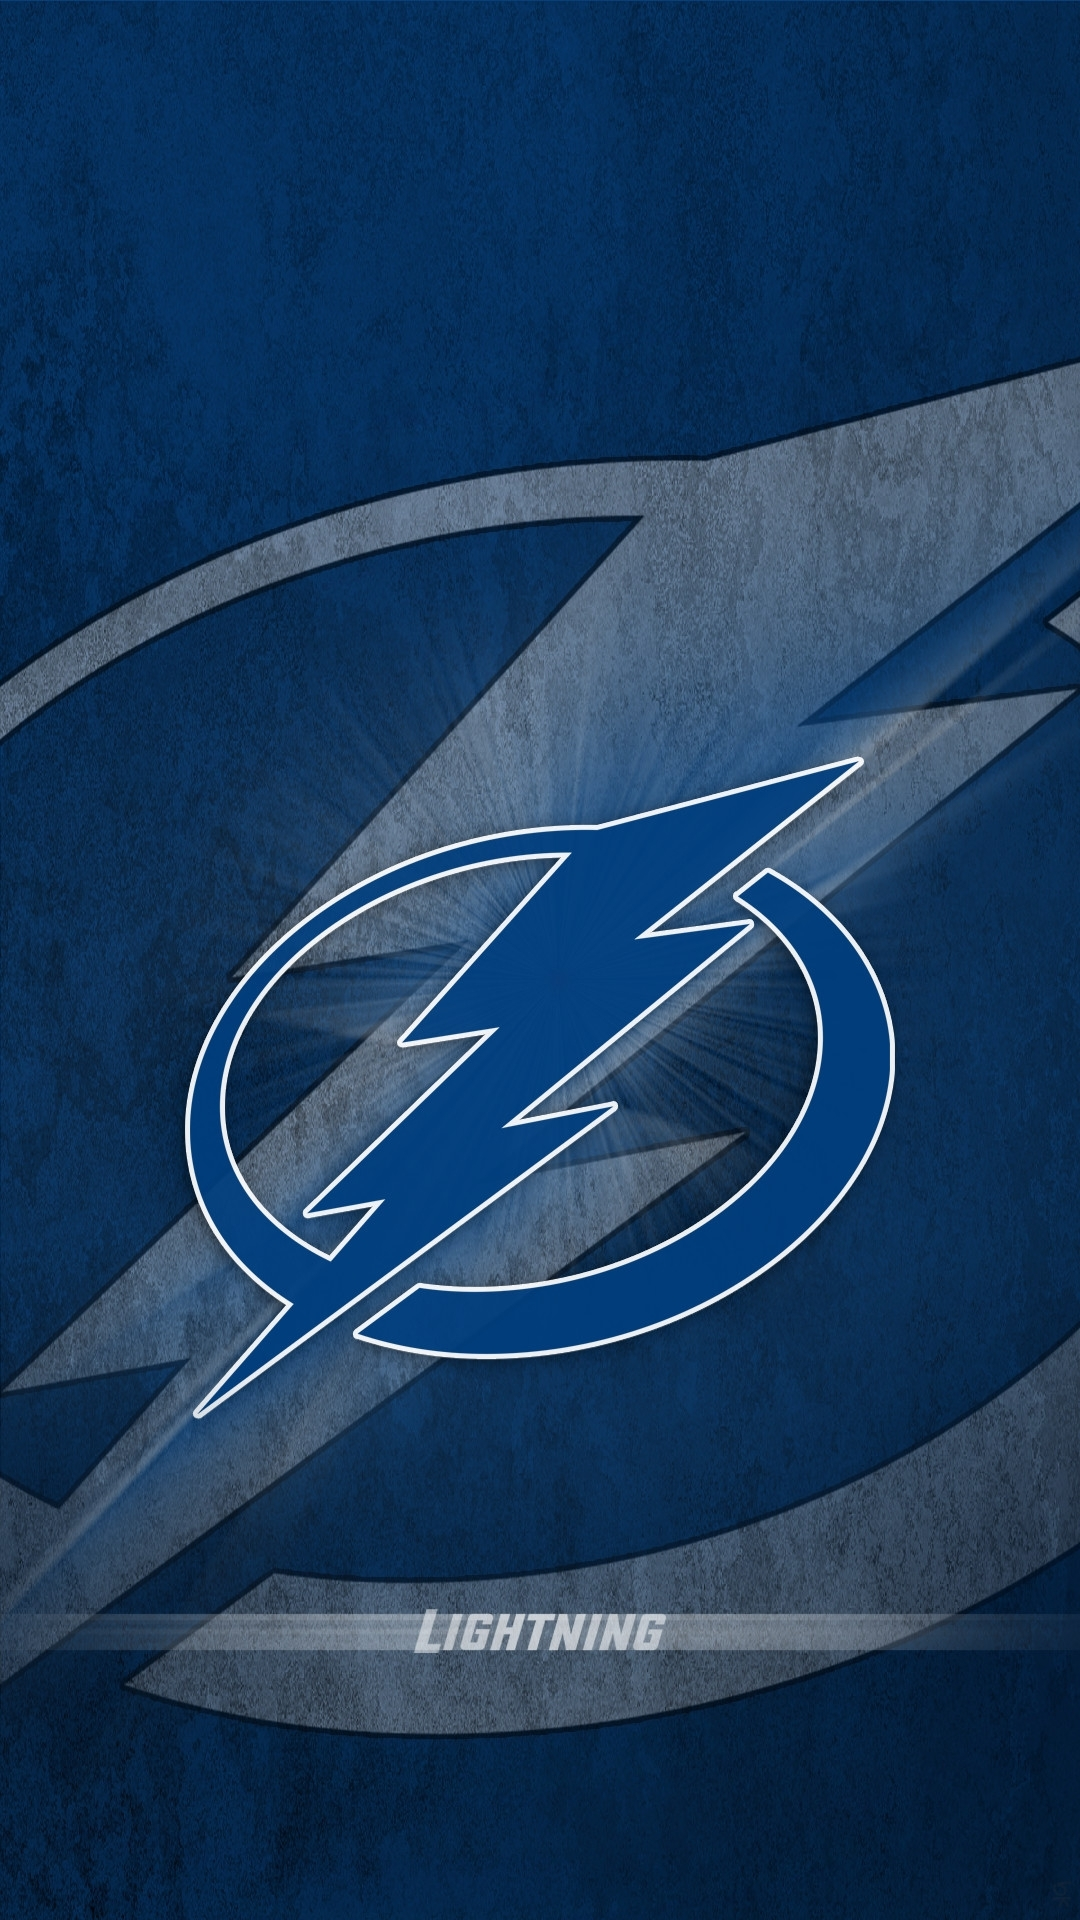 10 Most Popular Tampa Bay Lightning Iphone Wallpaper FULL HD 1920×1080 For PC Background